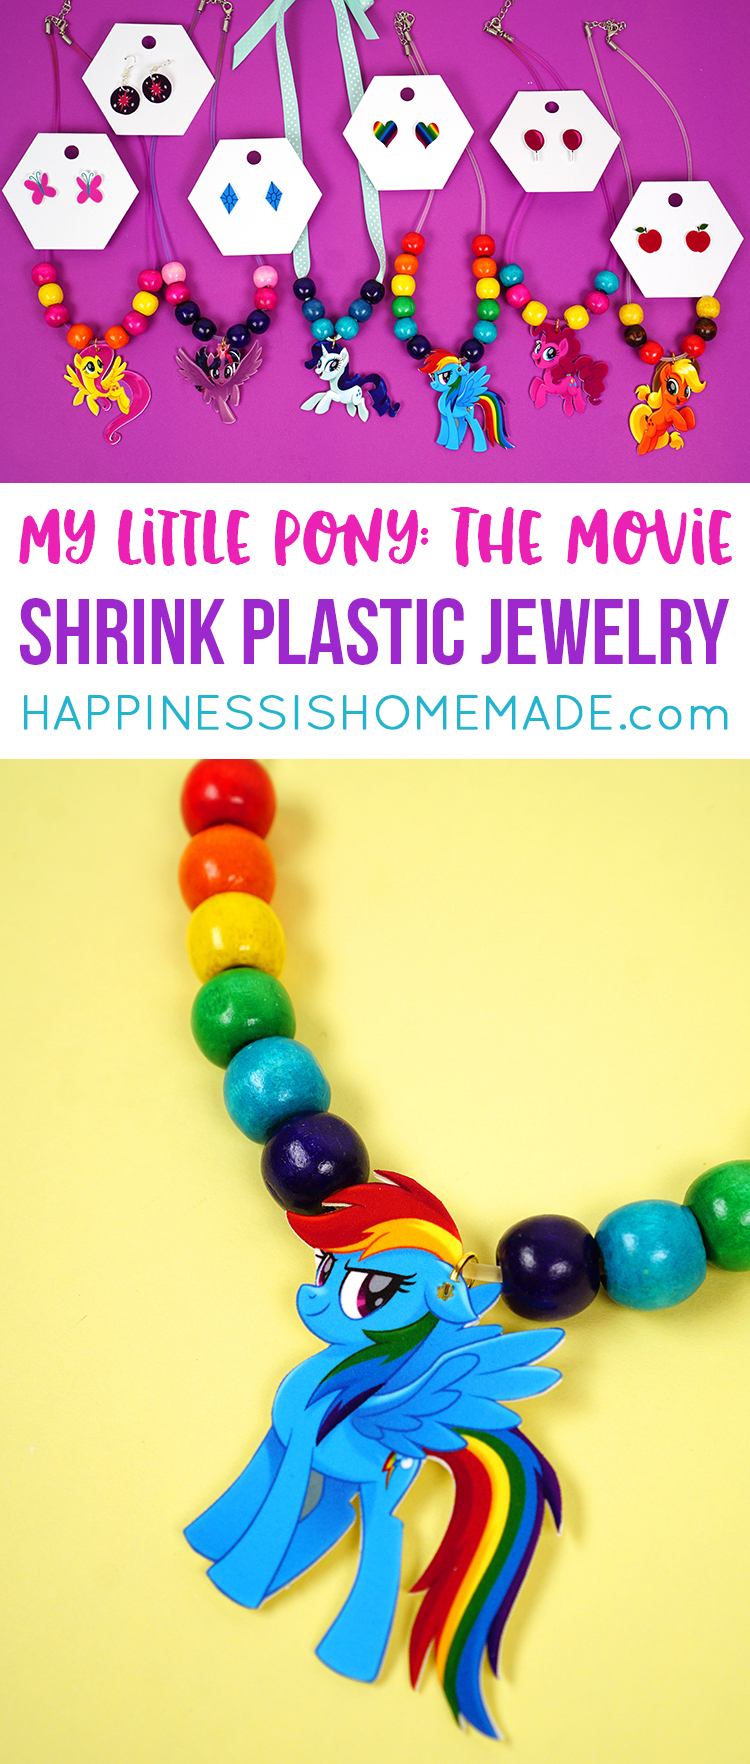 DIY My Little Pony: The Movie shrink plastic jewelry is a fun and easy craft for kids of all ages! Make your own adorable My Little Pony jewelry in minutes!